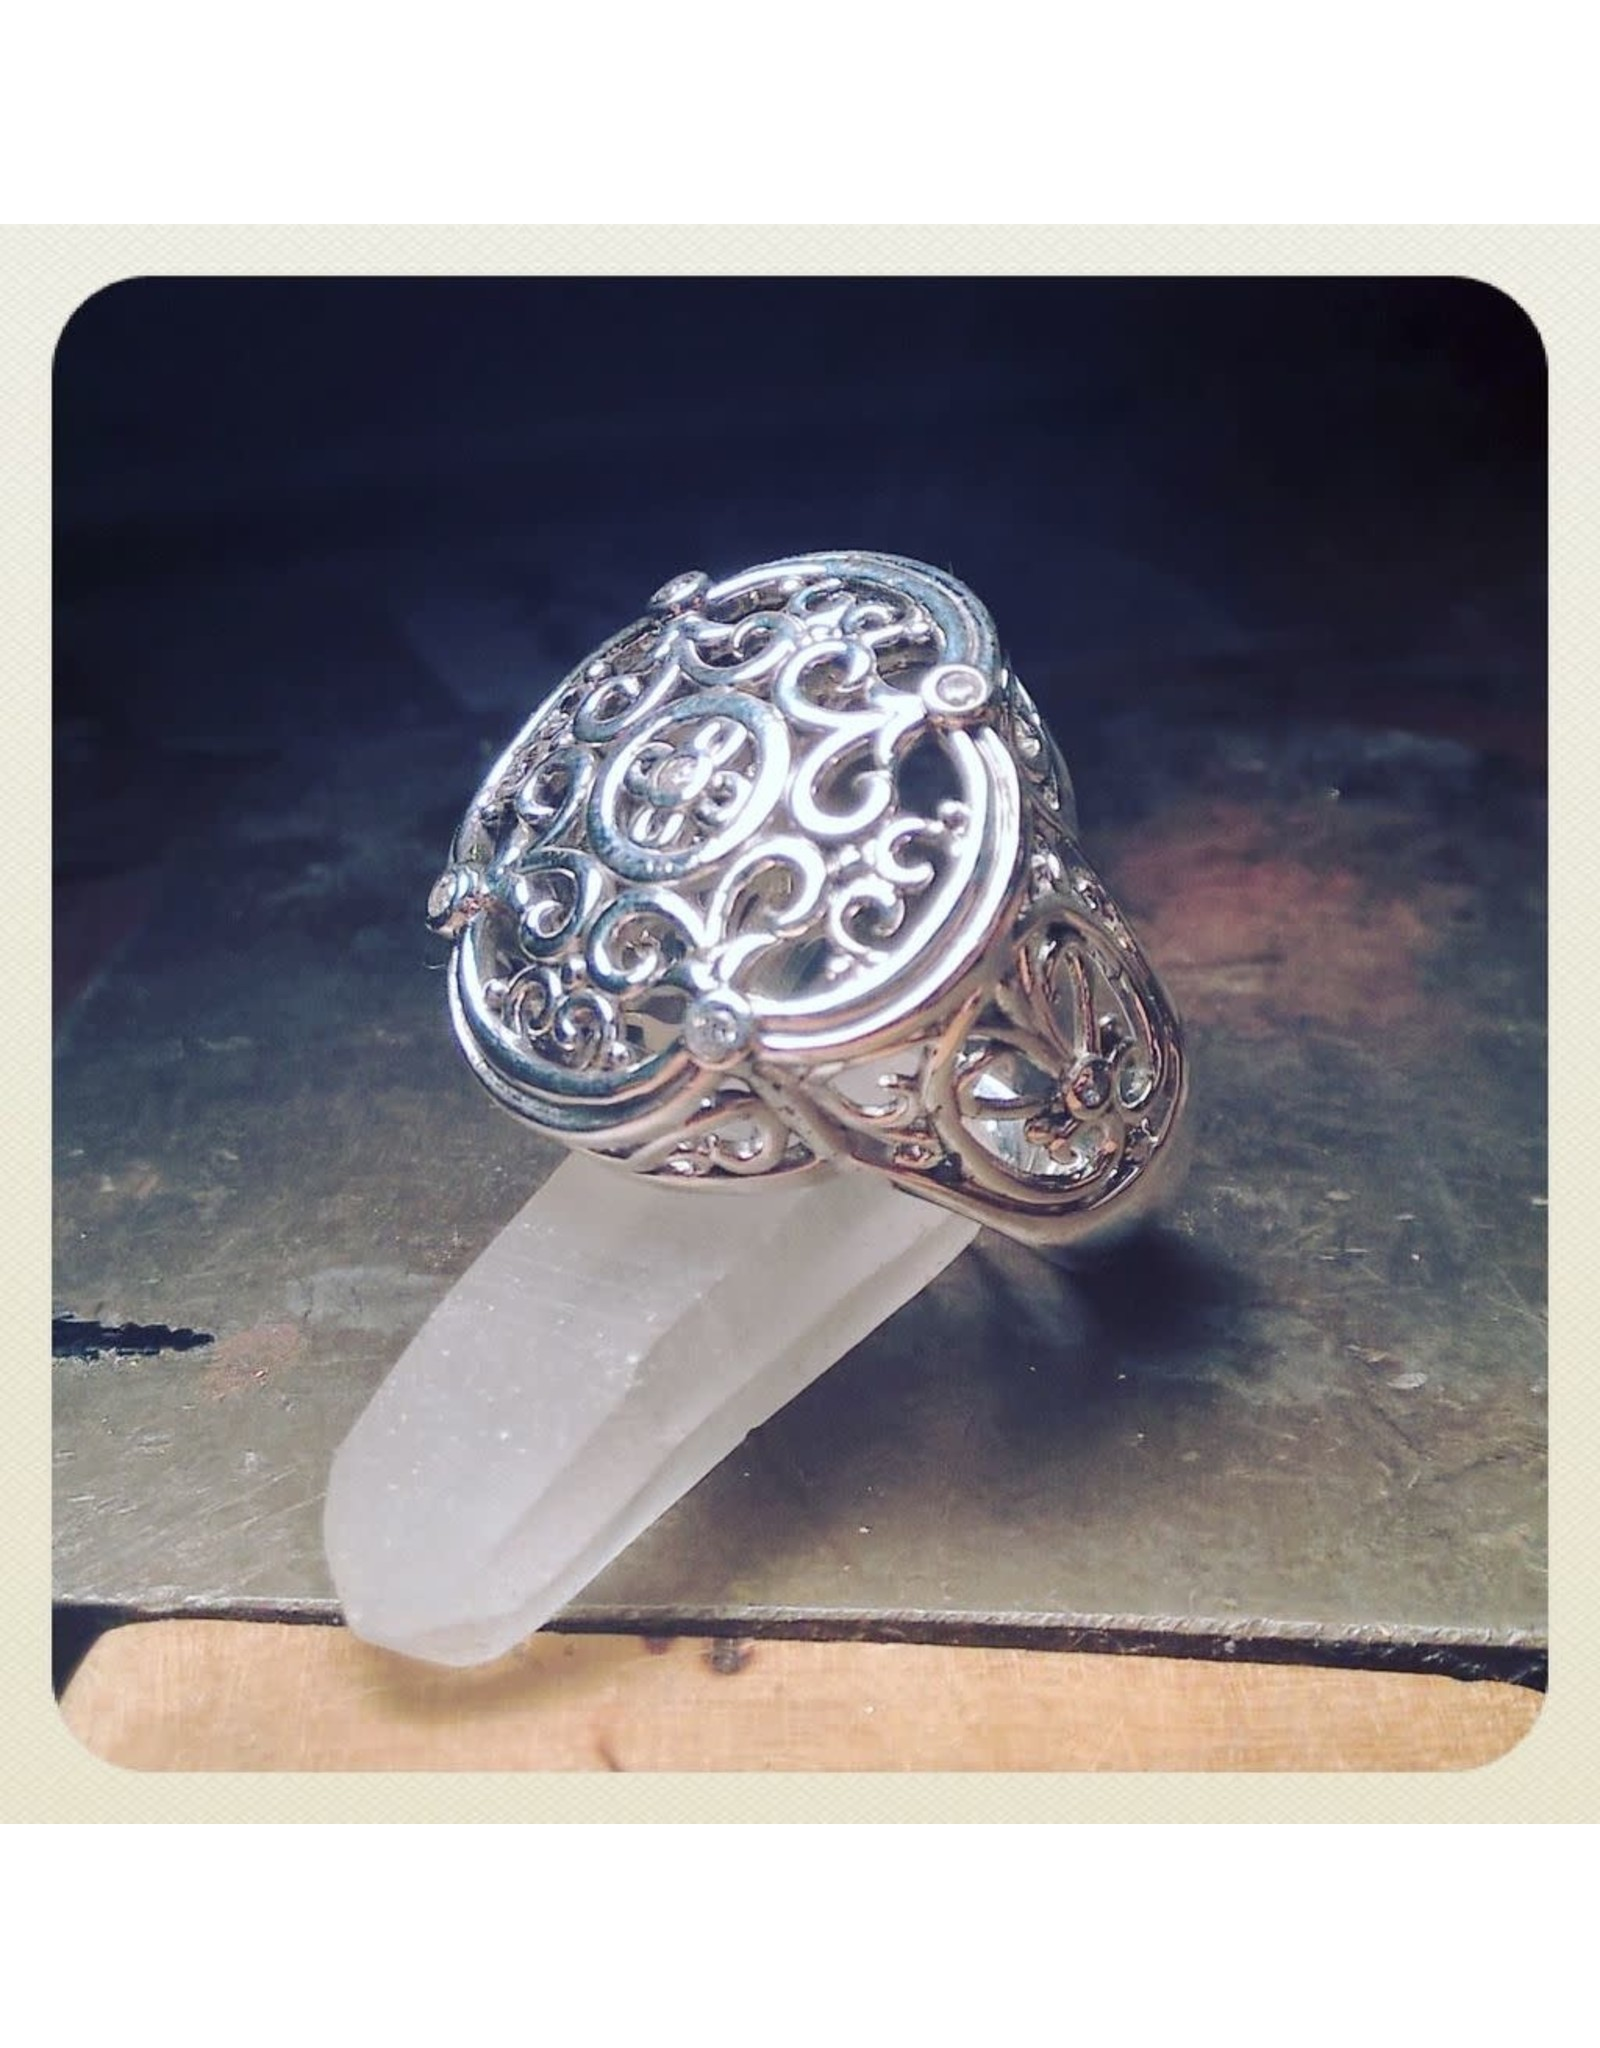 Chris Gillrie The Tower Ring. Solid Silver Filligree with 5 small Cubic Zirconia stones. Size 6.5